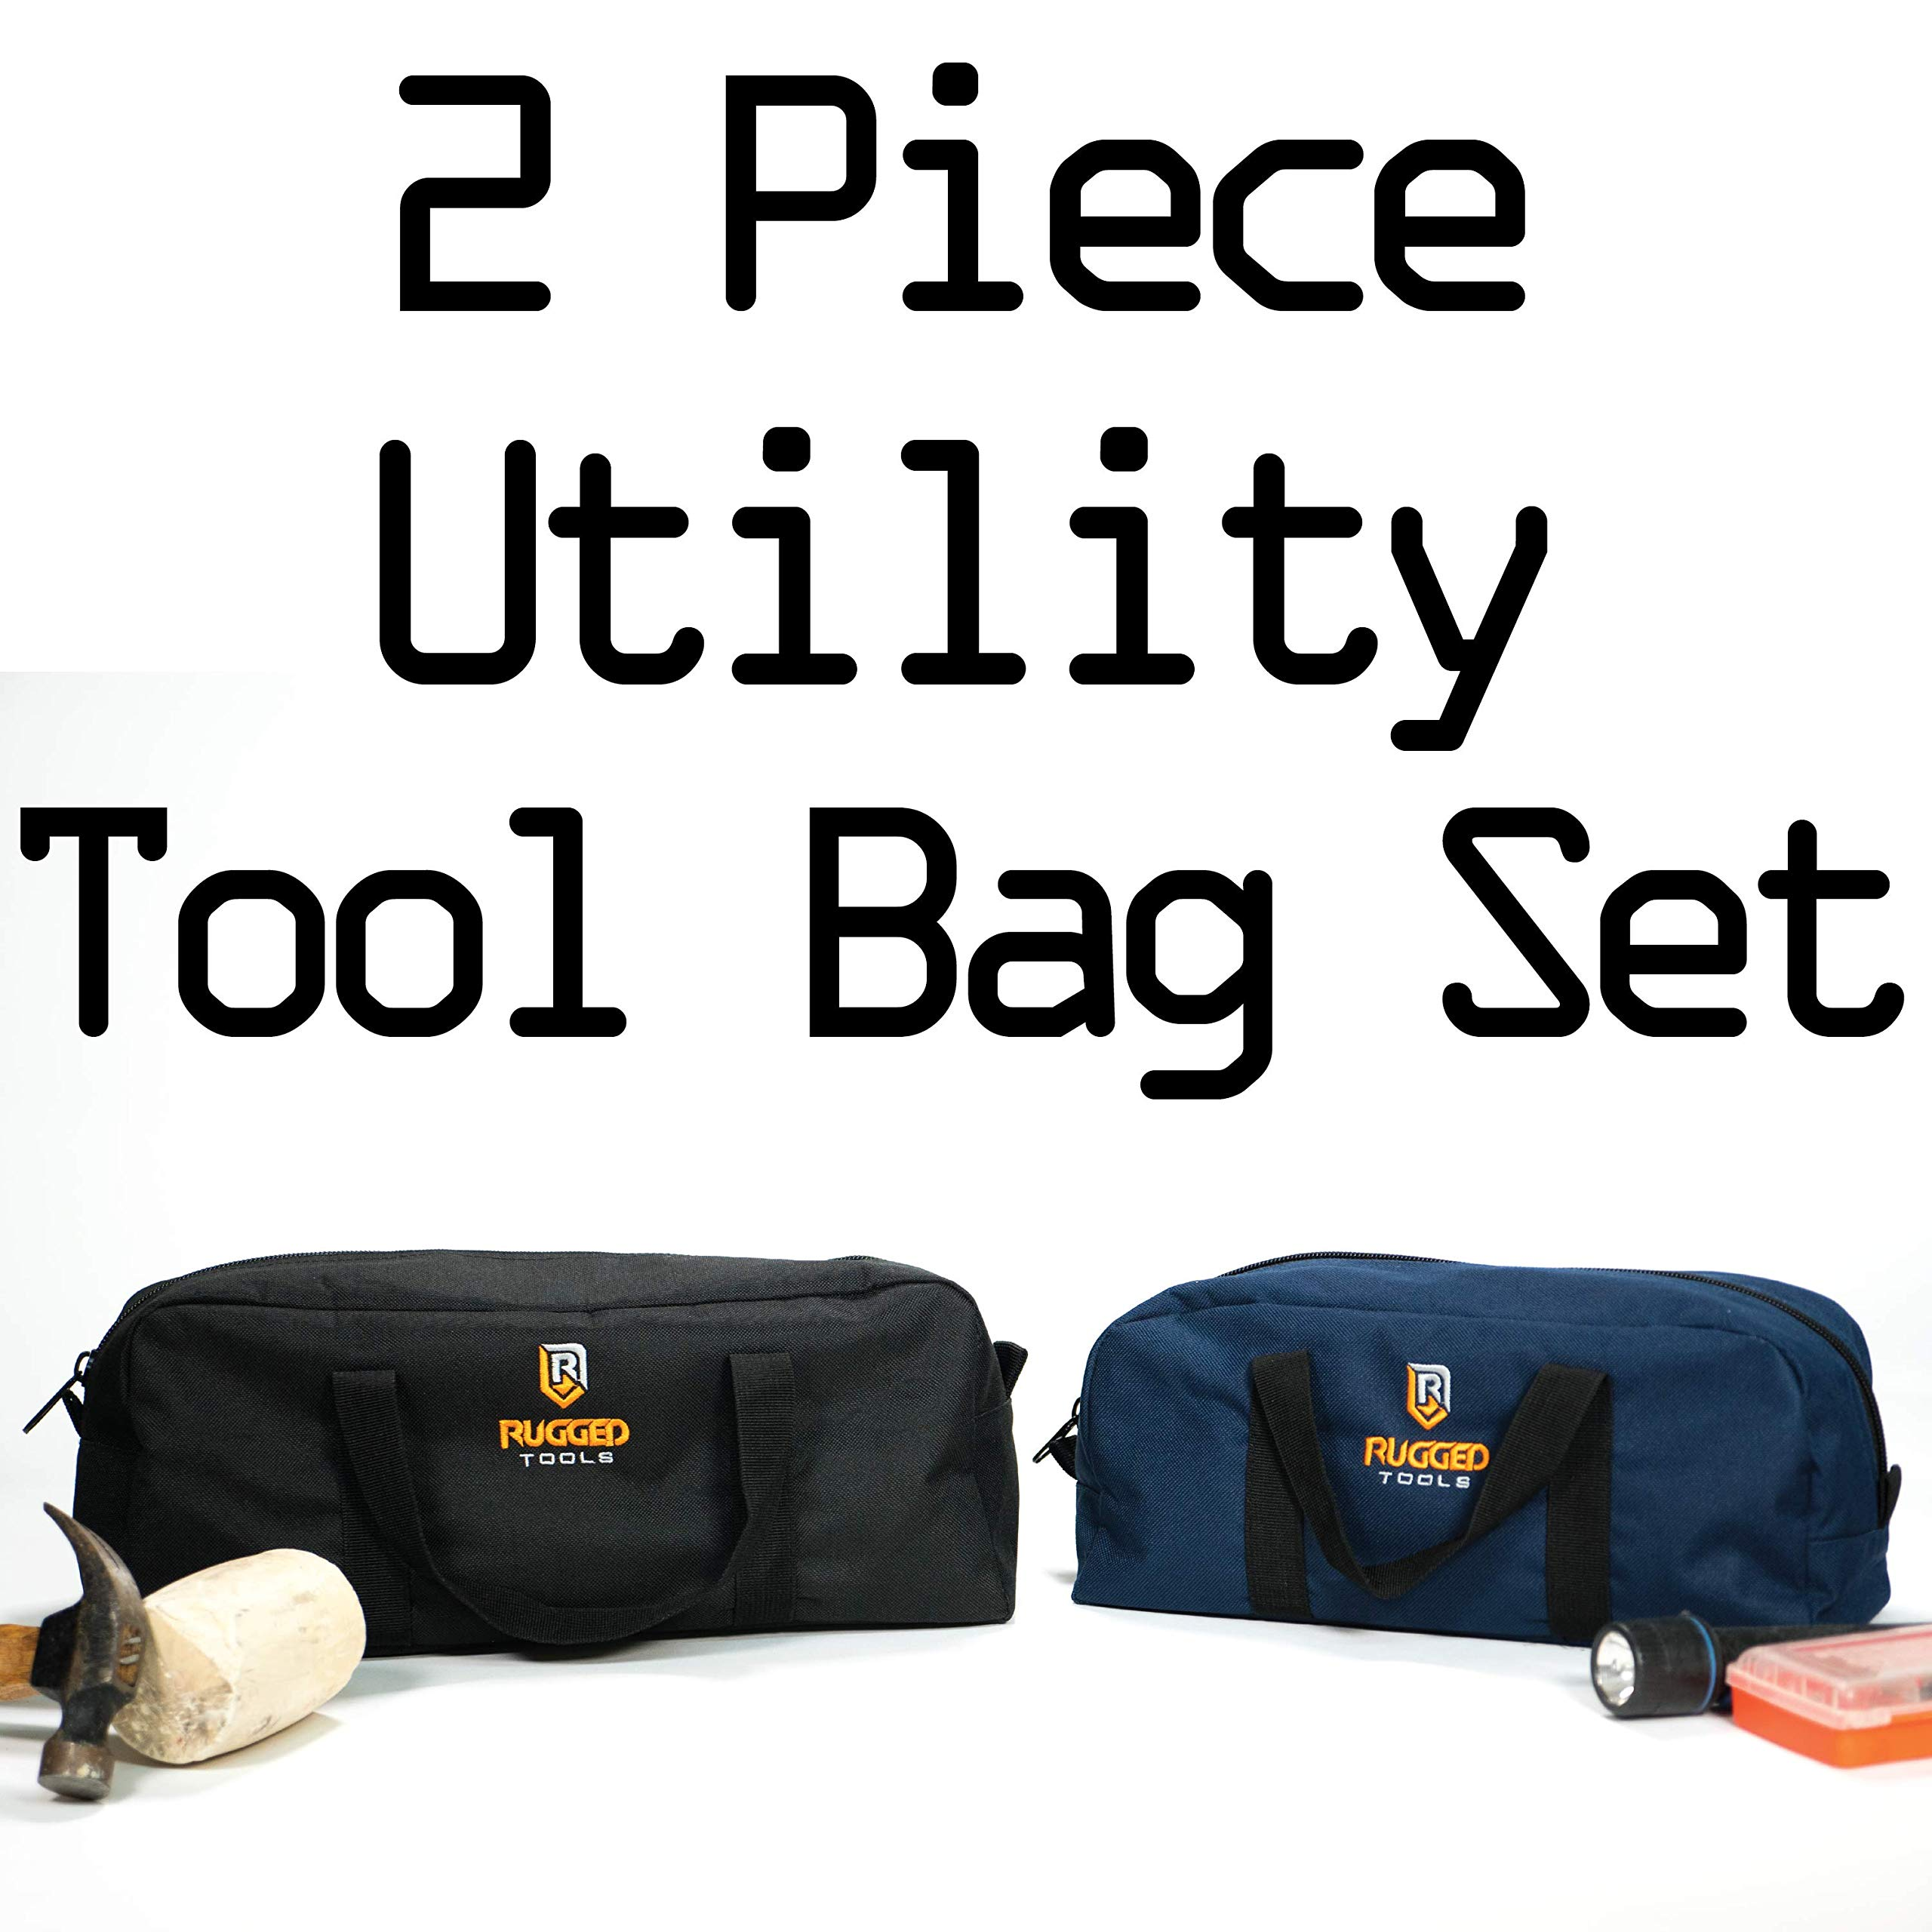 Rugged Tools Tool Bag Combo - Includes 1 Small & 1 Medium Toolbag - Organizer Tote Bags for Electrician, Plumbing, Gardening, HVAC & More by Rugged Tools (Image #4)